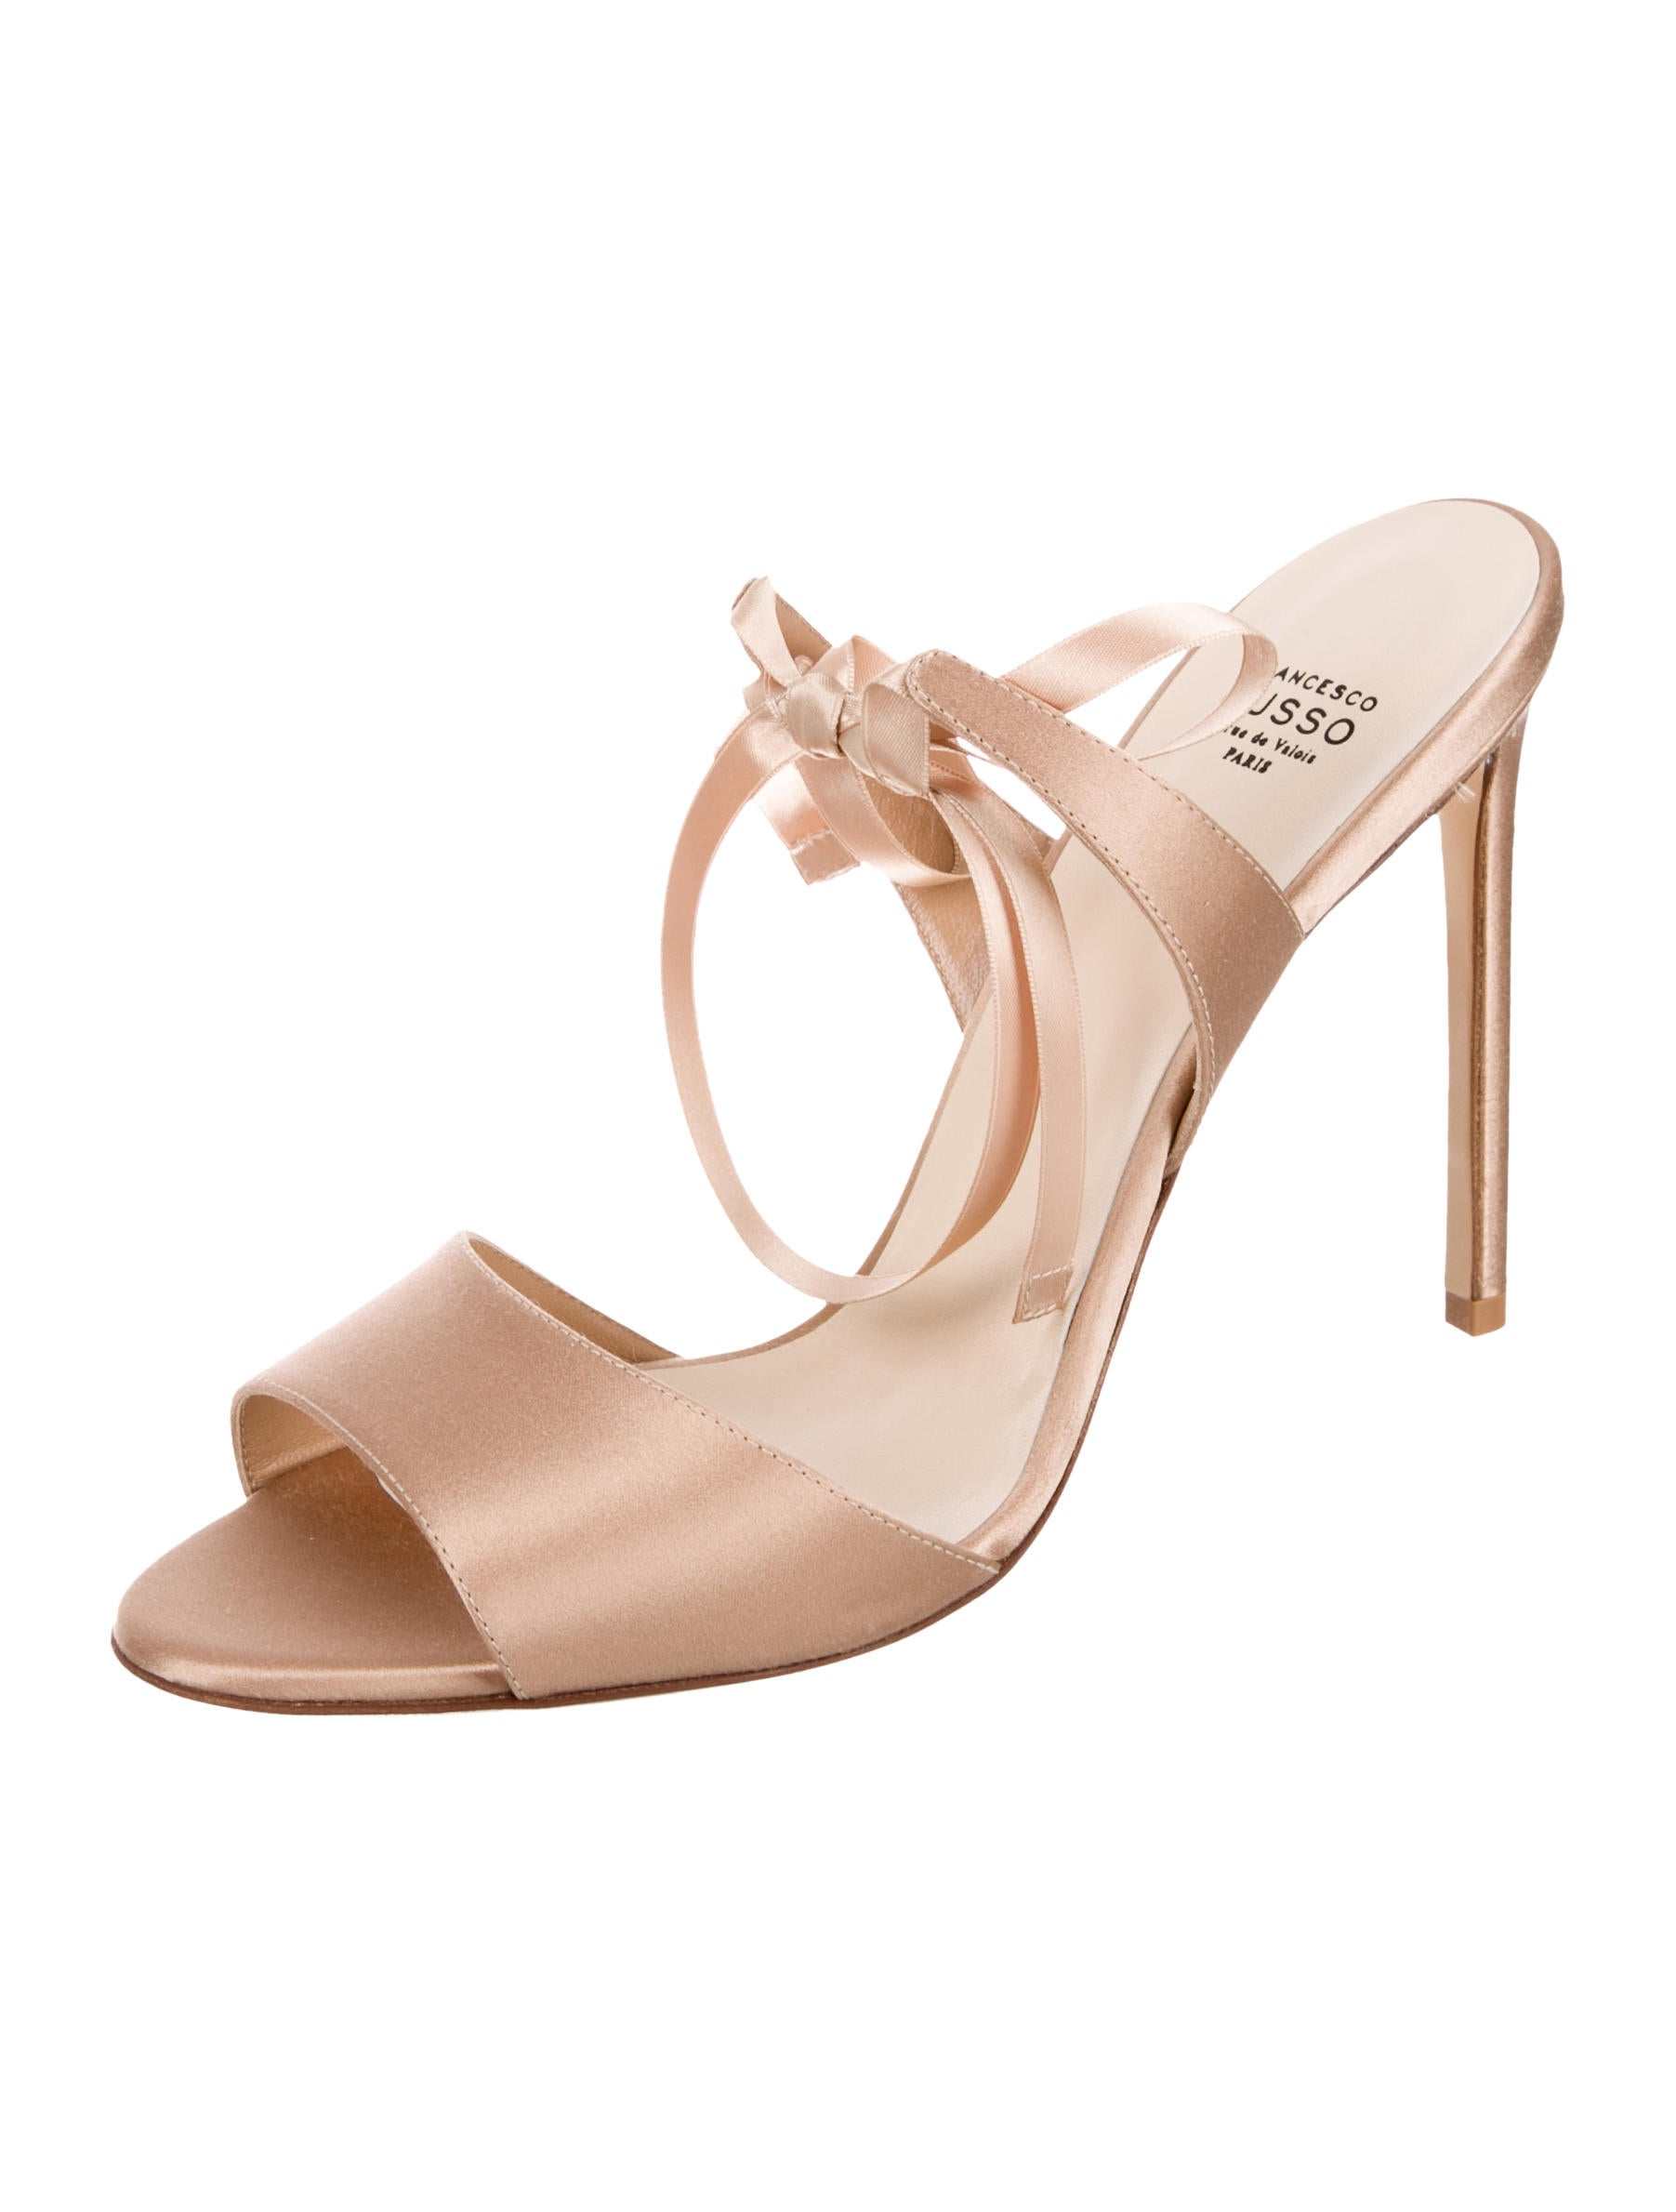 Cheapest for sale pictures Francesco Russo Lace-Up Satin Sandals w/ Tags cheap sale outlet store tNITIbtt